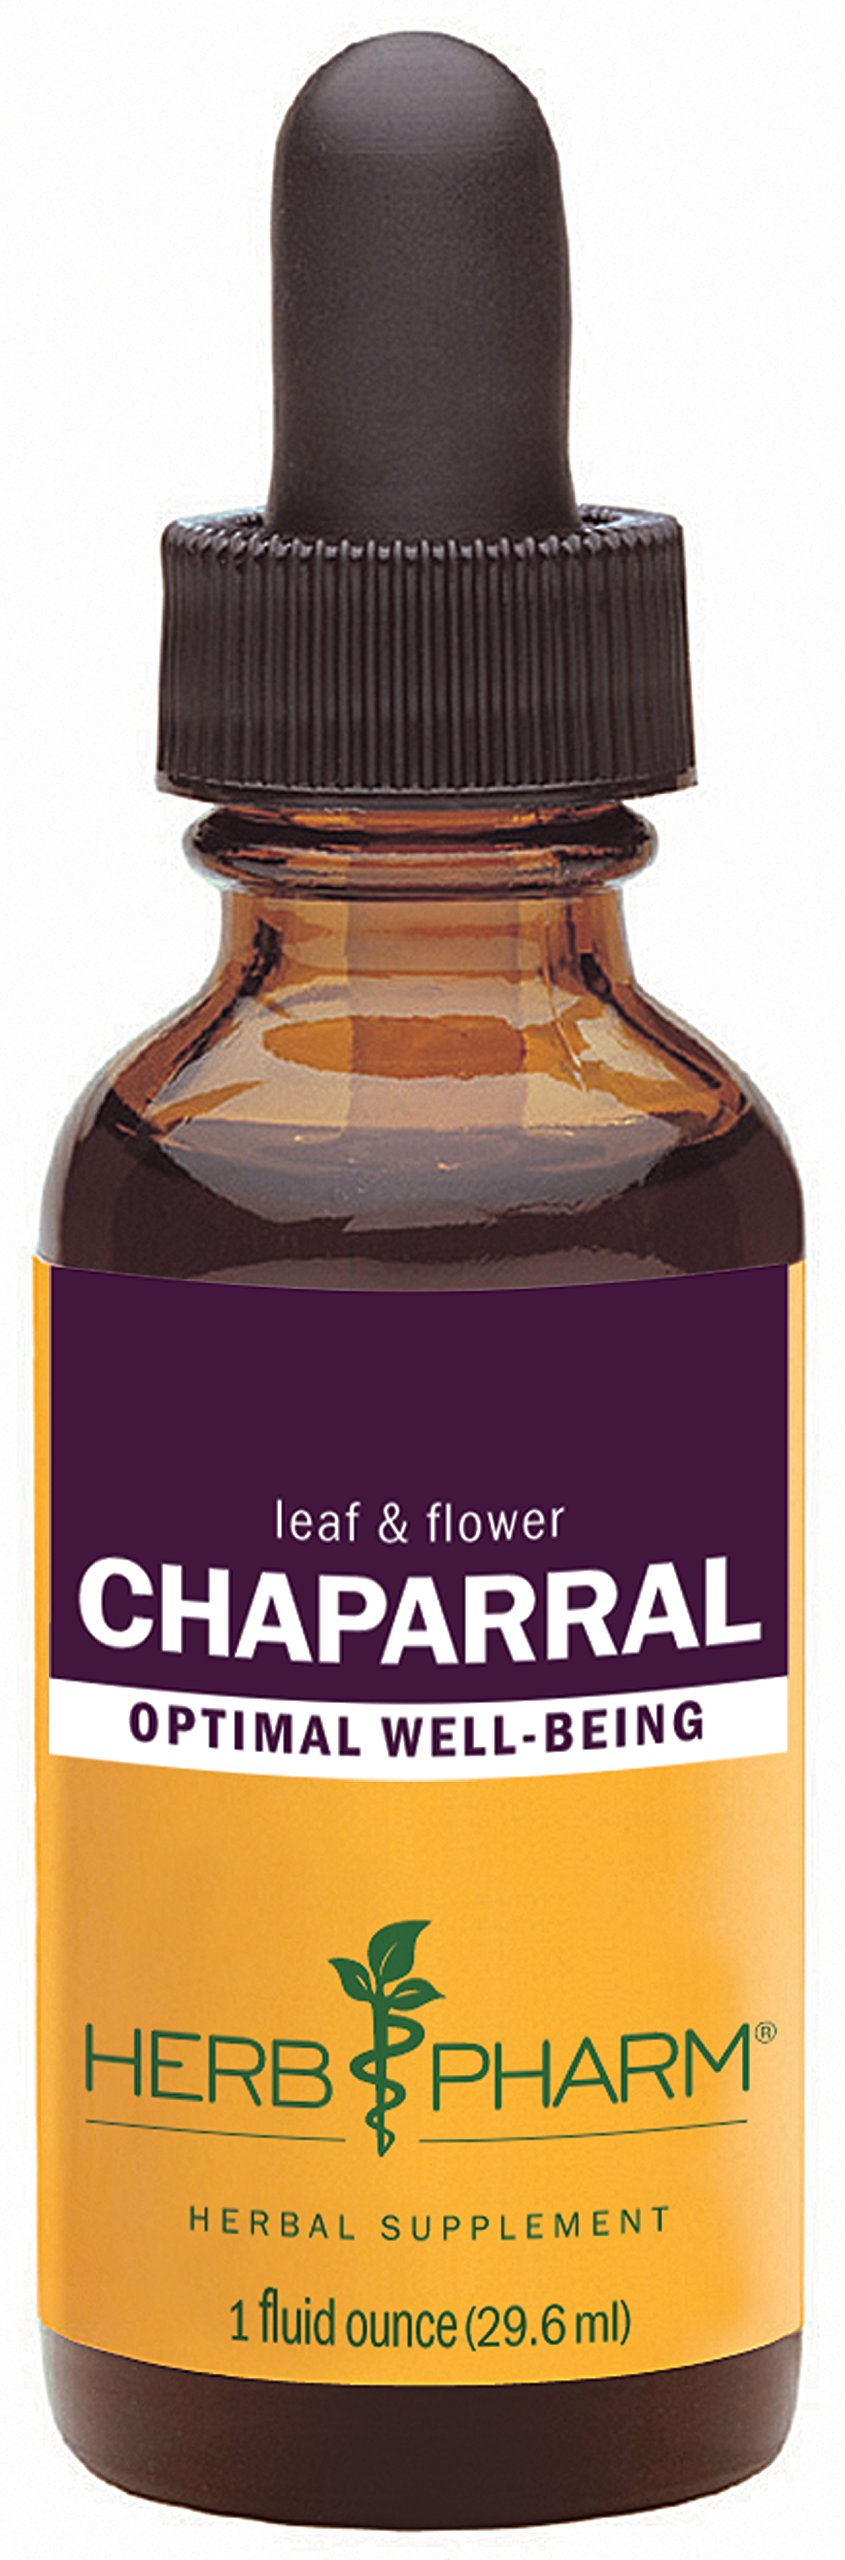 Herb Pharm Chaparral Extract - 1 Ounce